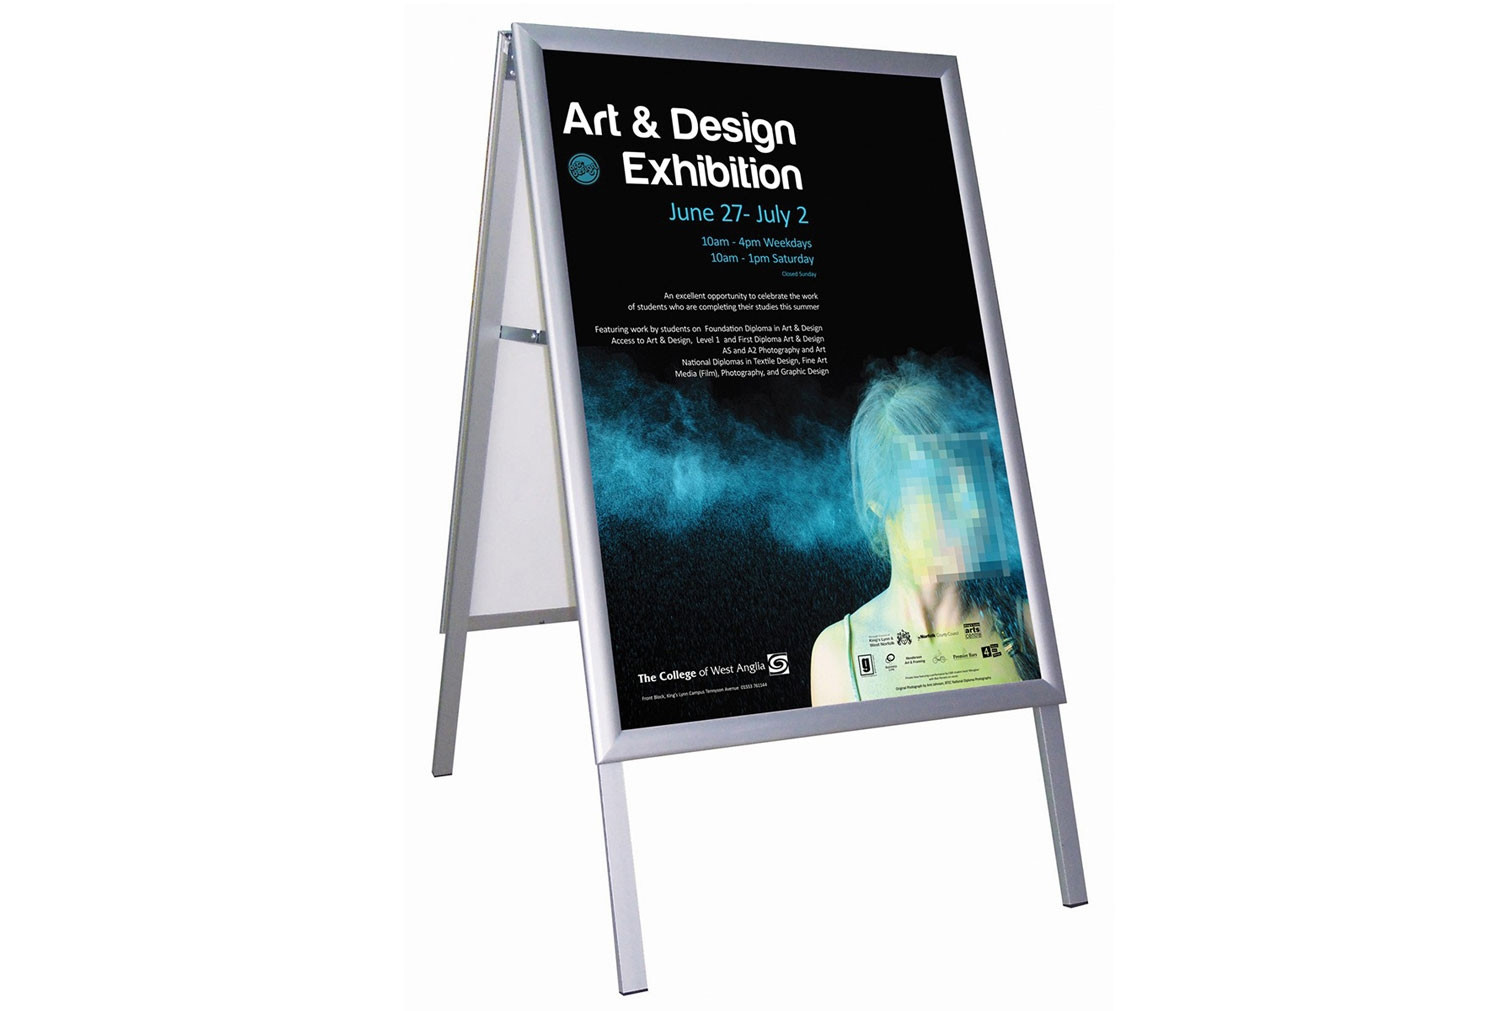 Next-Day Busygrip Freestanding Poster Frame (Outdoor Use)